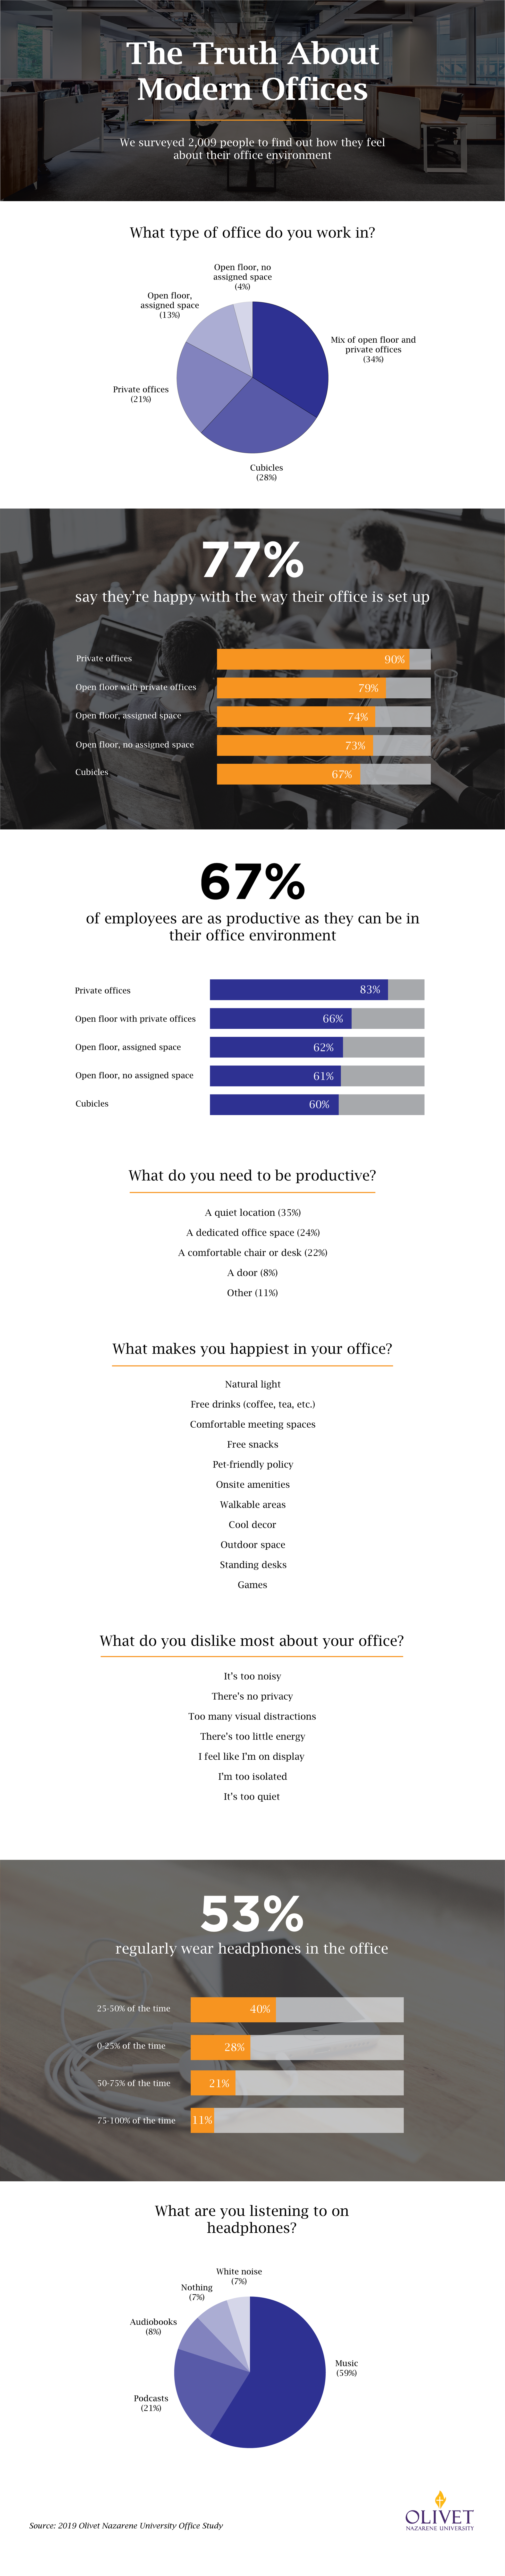 Statistics about employees' satisfaction with office environment